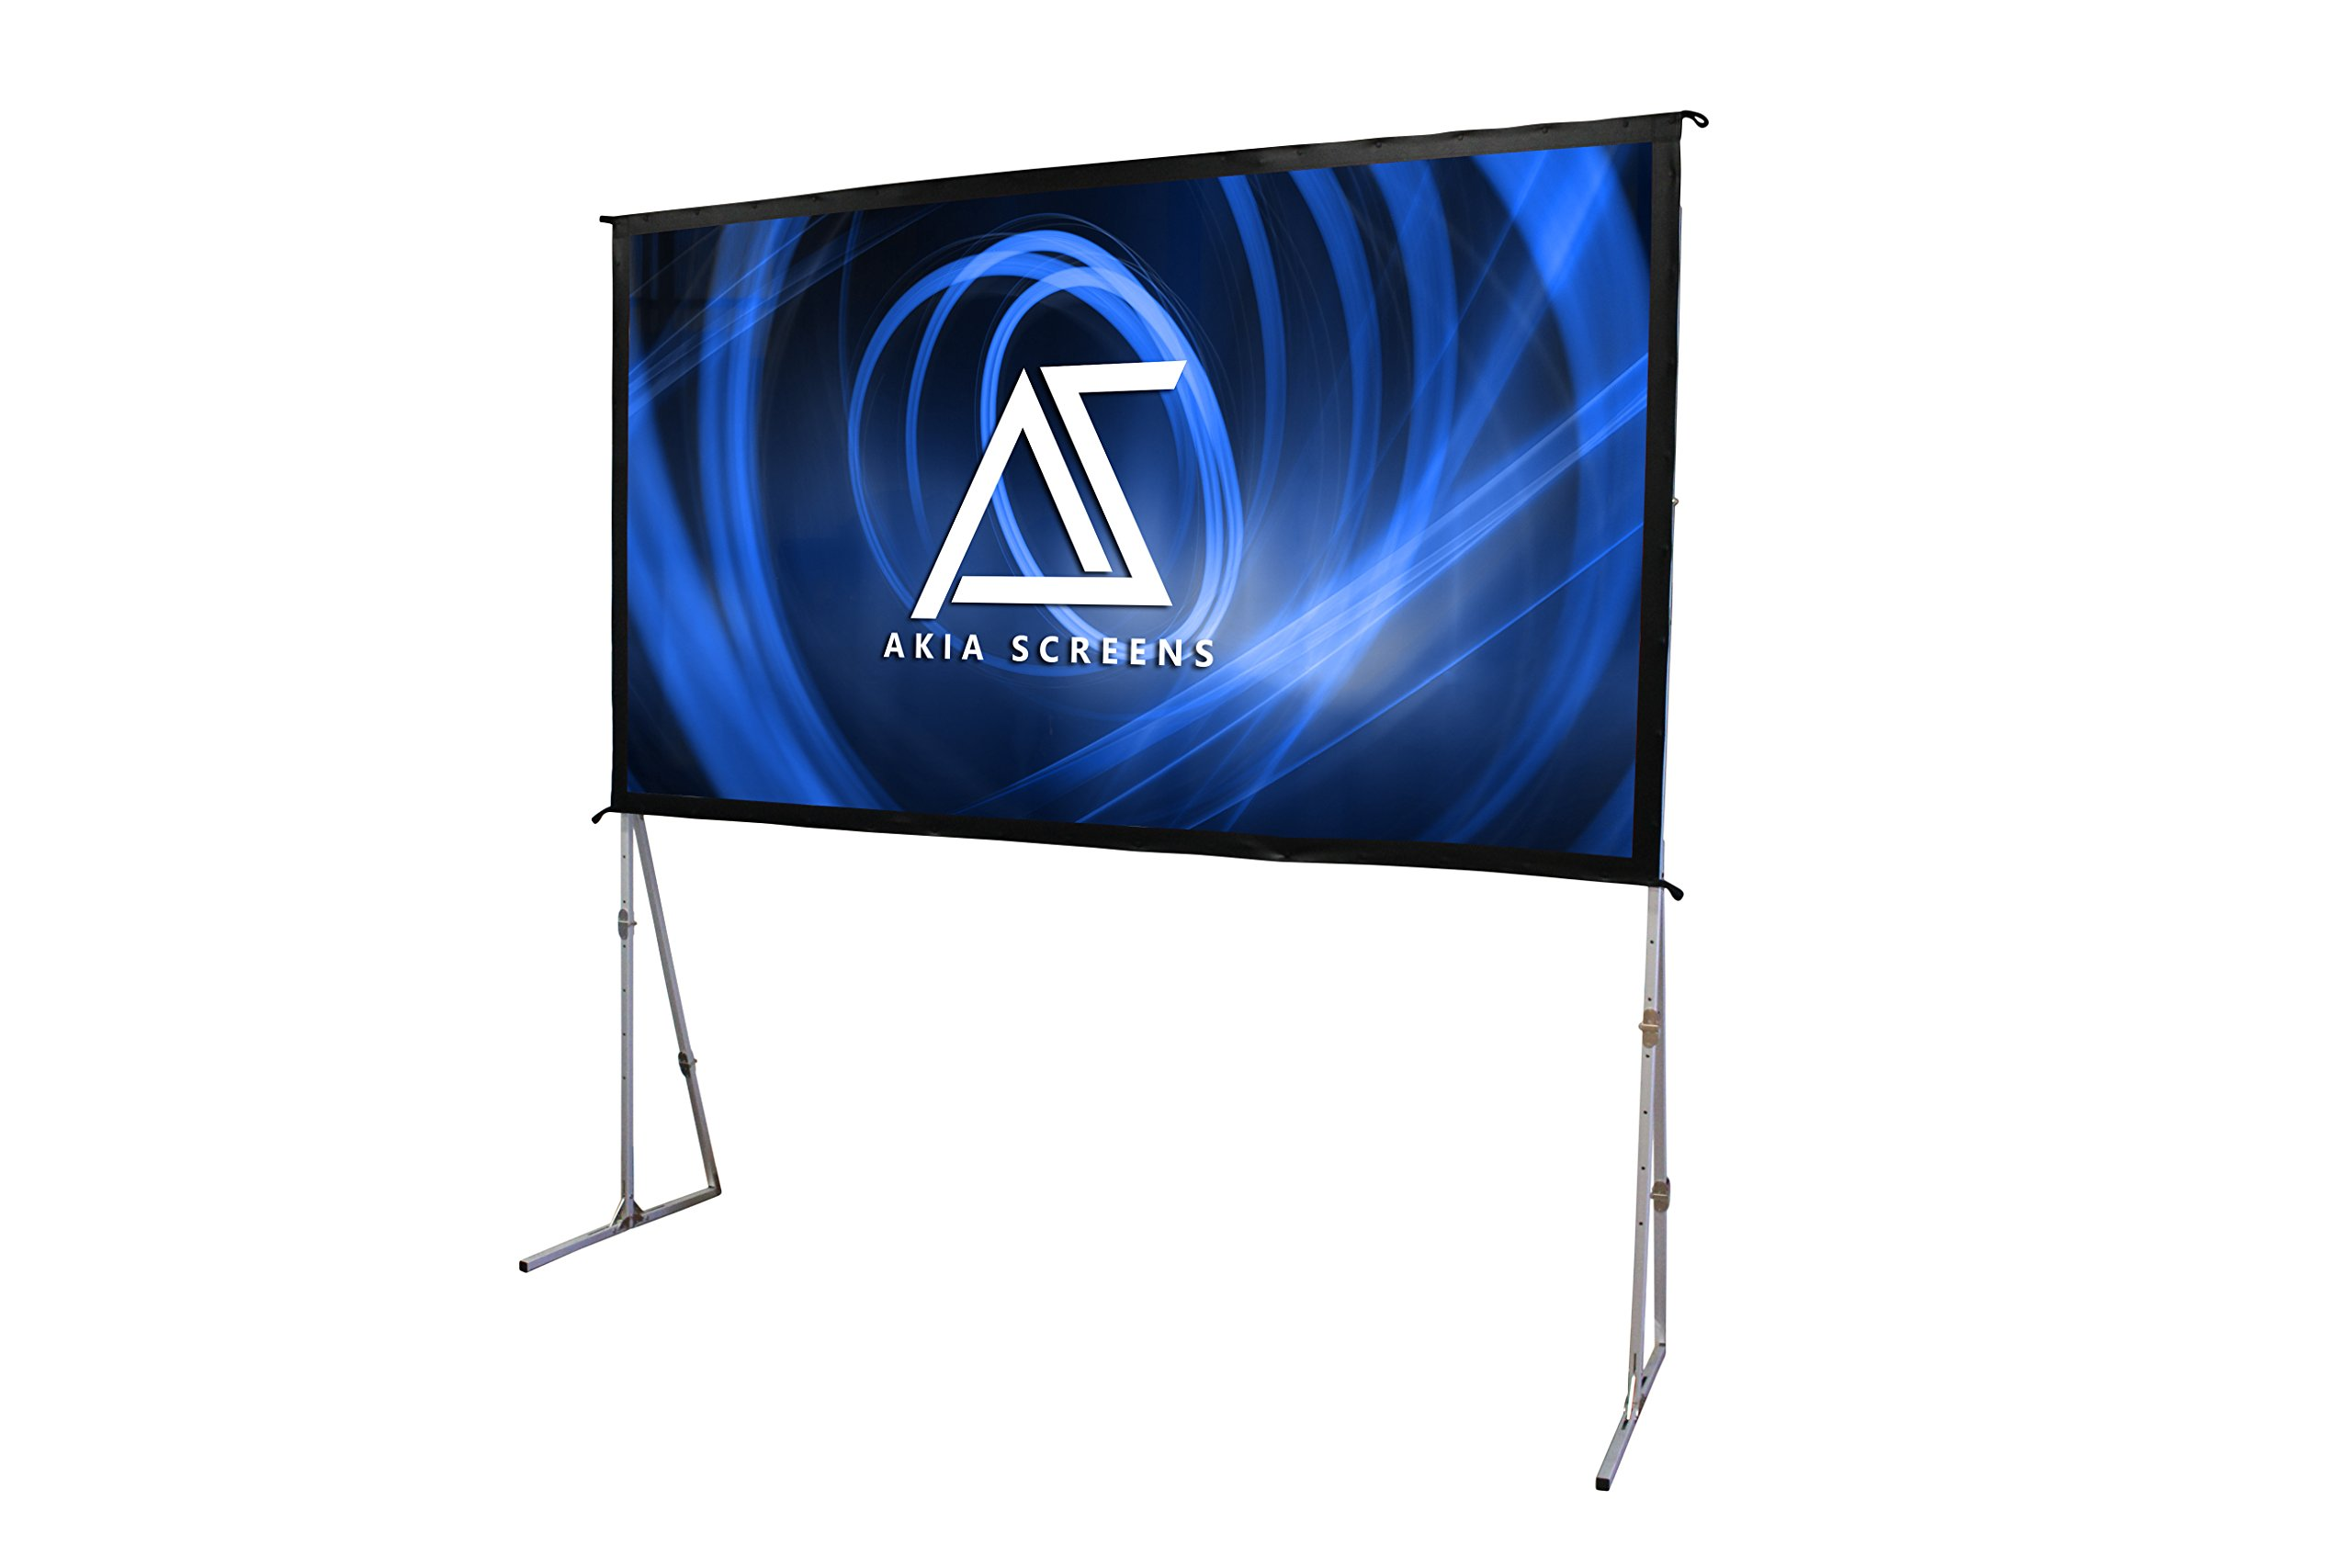 """Akia Screens 145"""" Portable Indoor / Outdoor Easy Snap Aluminum Frame Projector Screen, 145 inch Diagonal 16:9, 8K / 4K Ultra HD 3D Ready Adjustable Height Projection Screen Kit, AK-OS145H"""